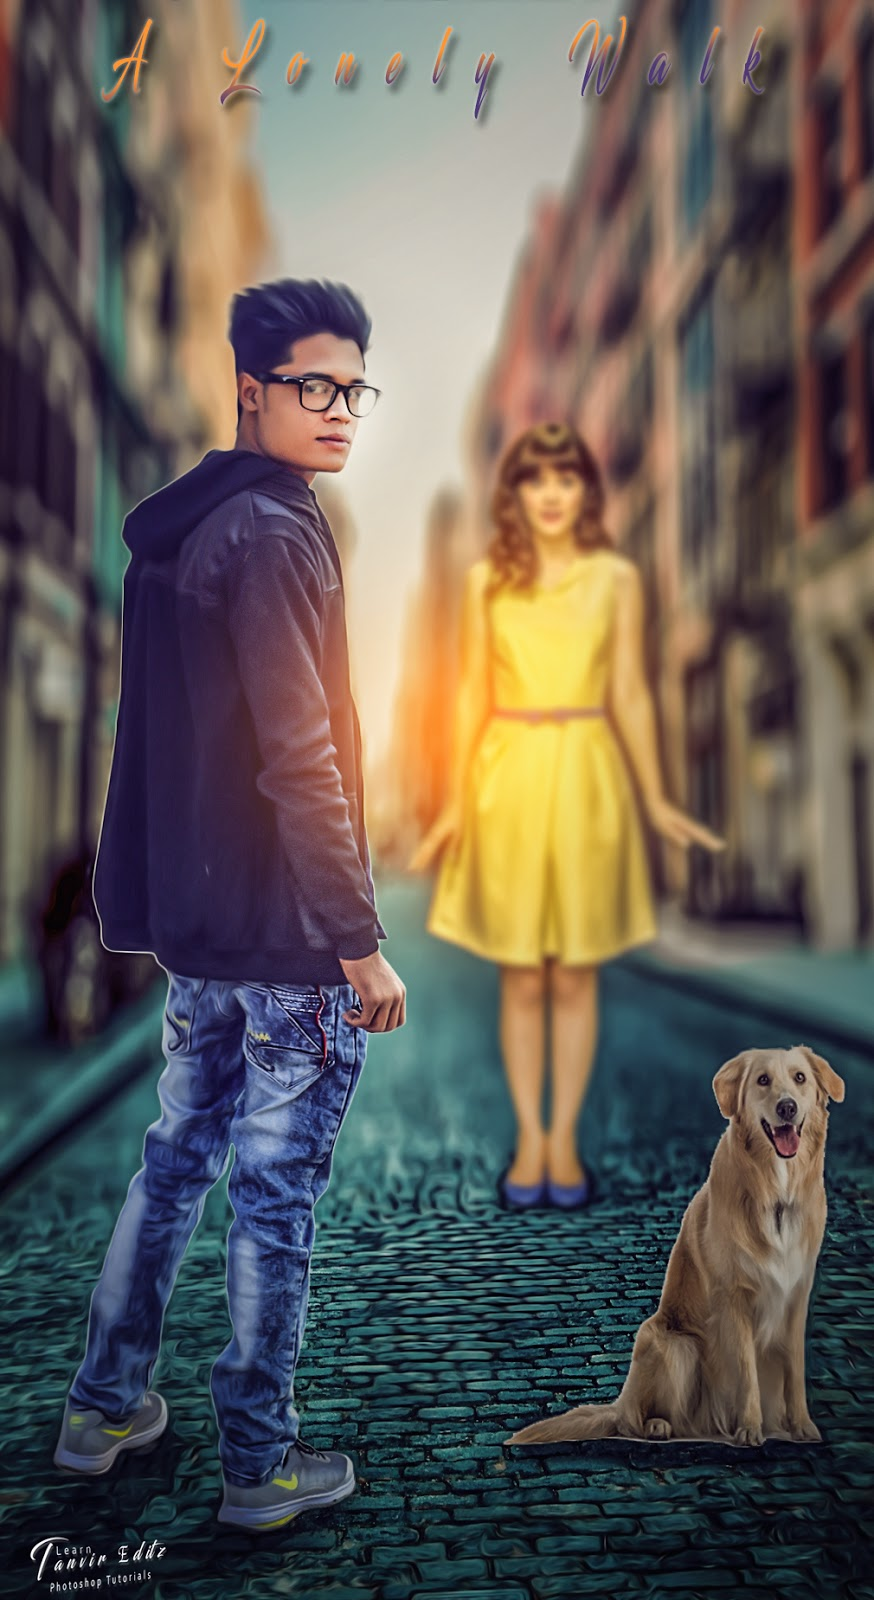 Tanvirz creation lonely walk movie poster design tutorial lonely walk movie poster design tutorial photoshop by tanvirz creation baditri Gallery